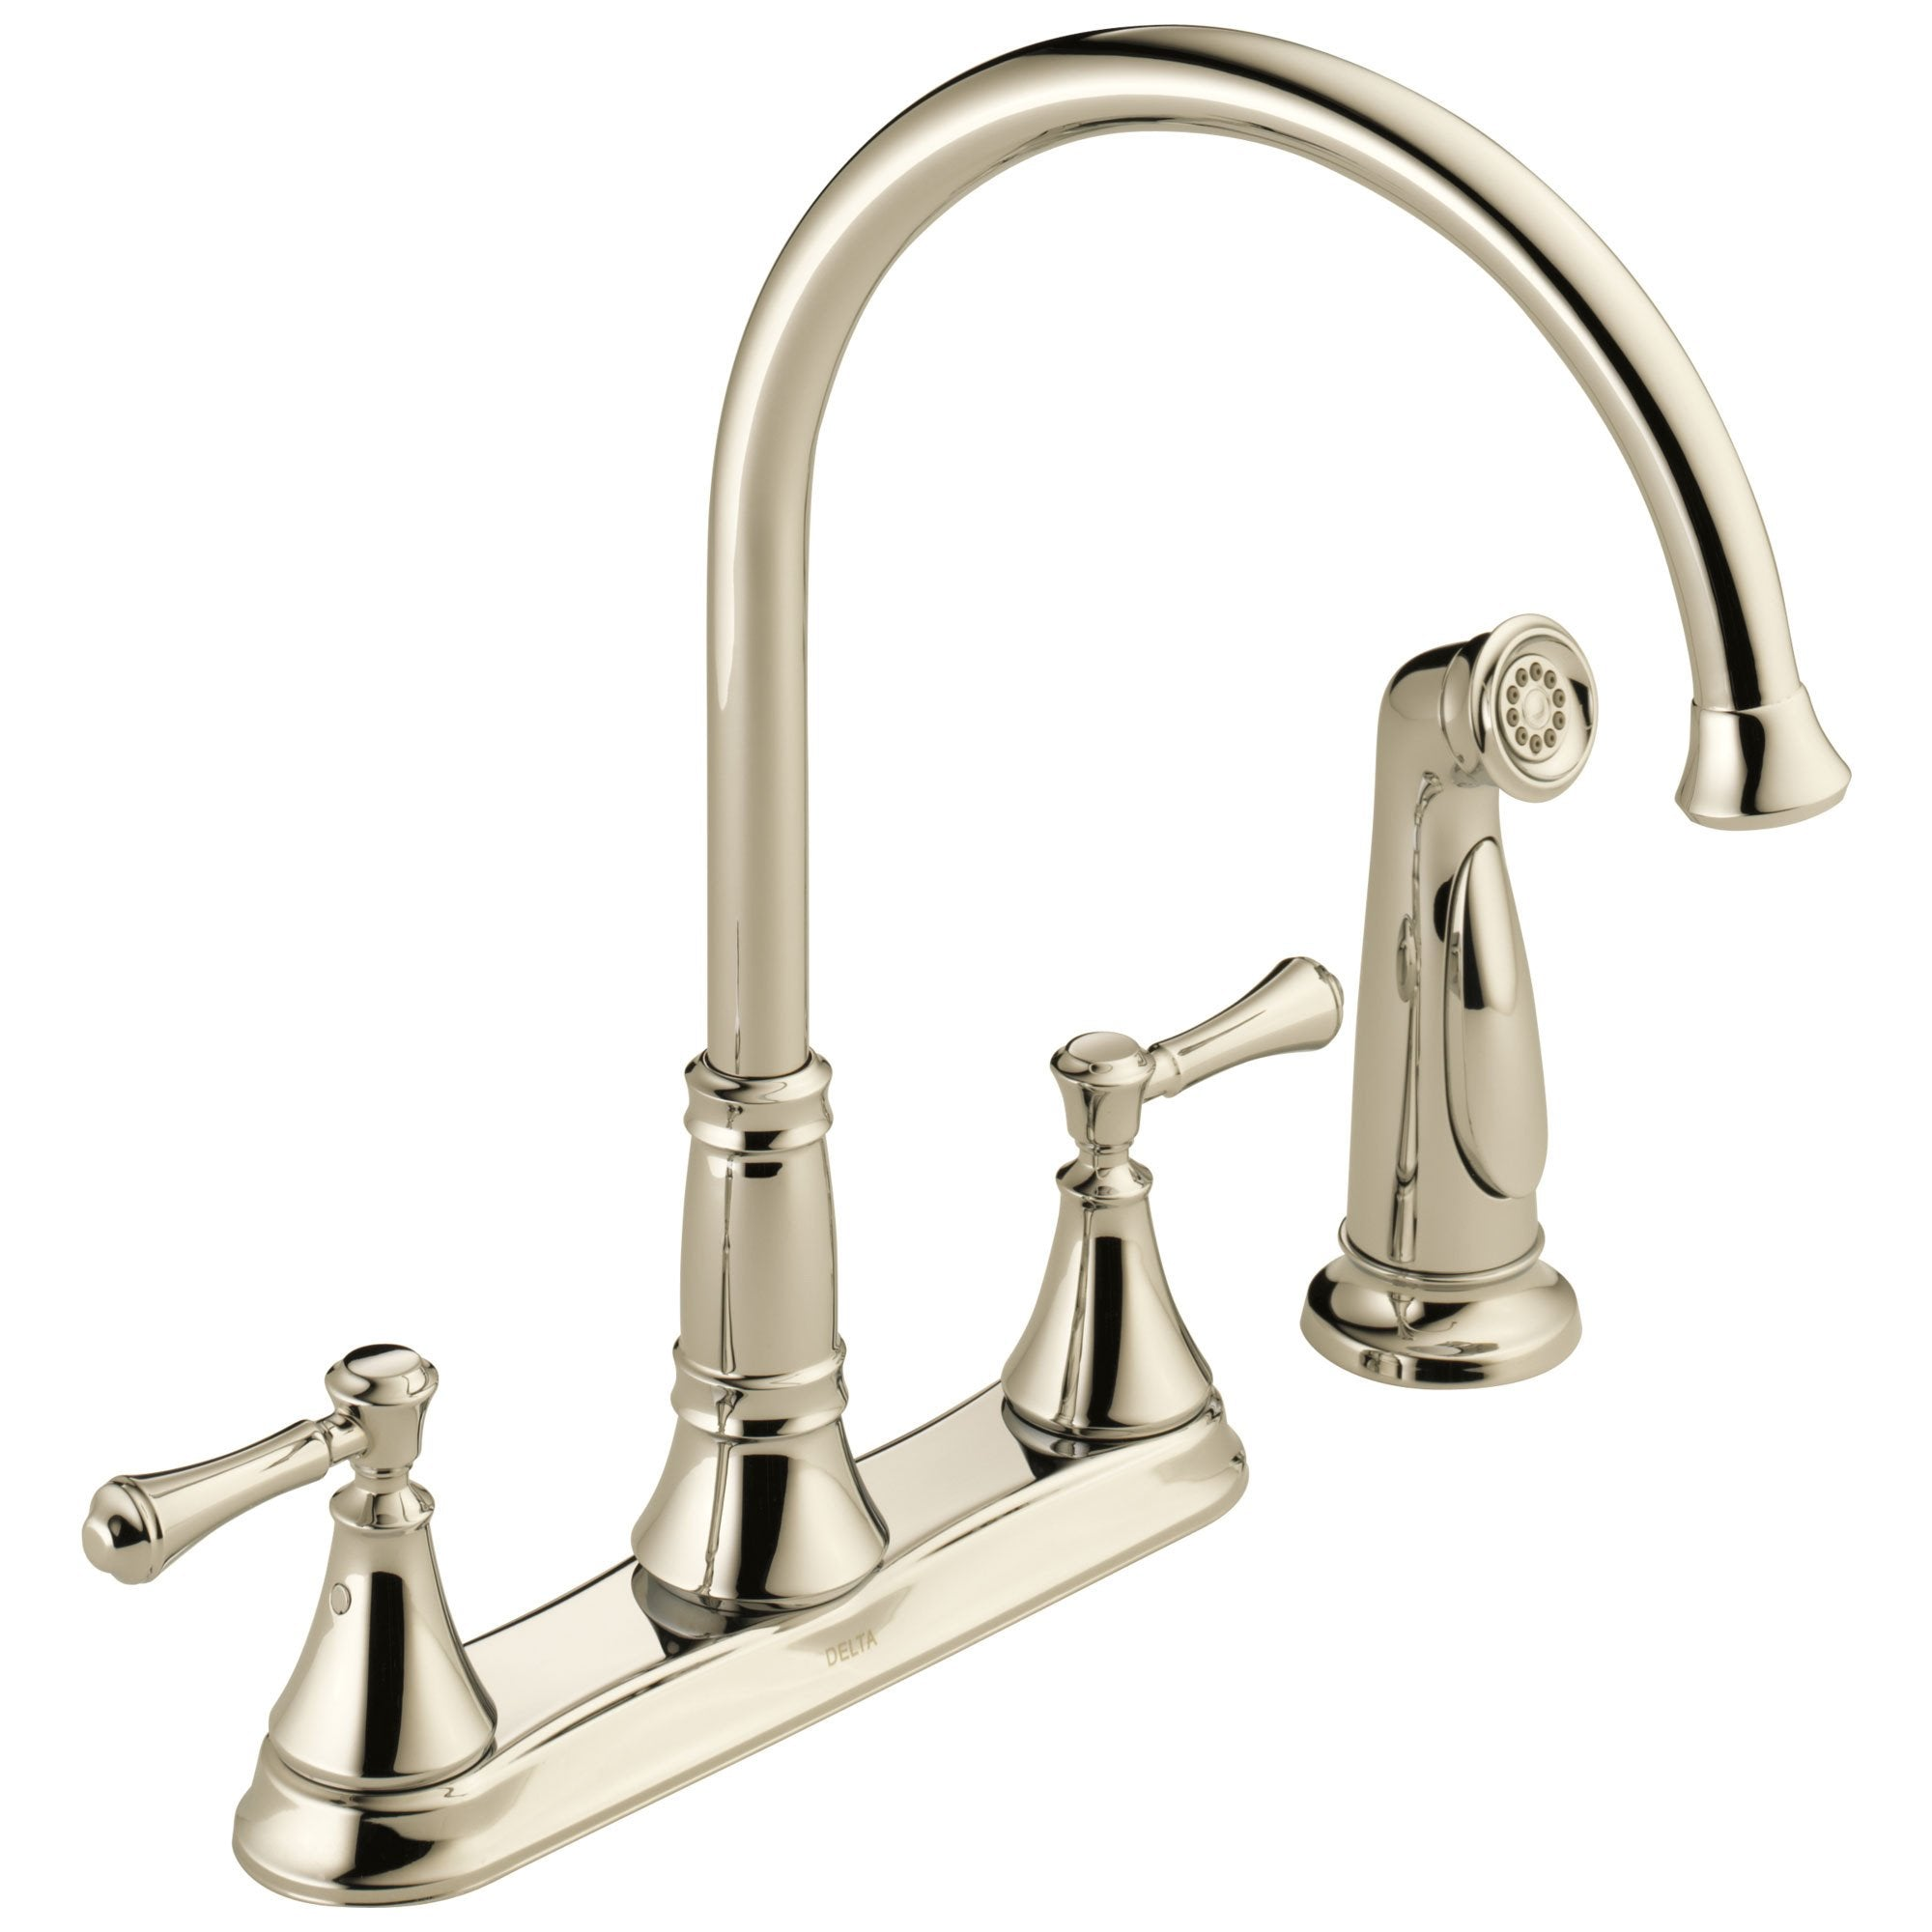 Delta Cassidy Collection Polished Nickel Finish Two Handle Kitchen Sink Faucet with Side Spray 751593